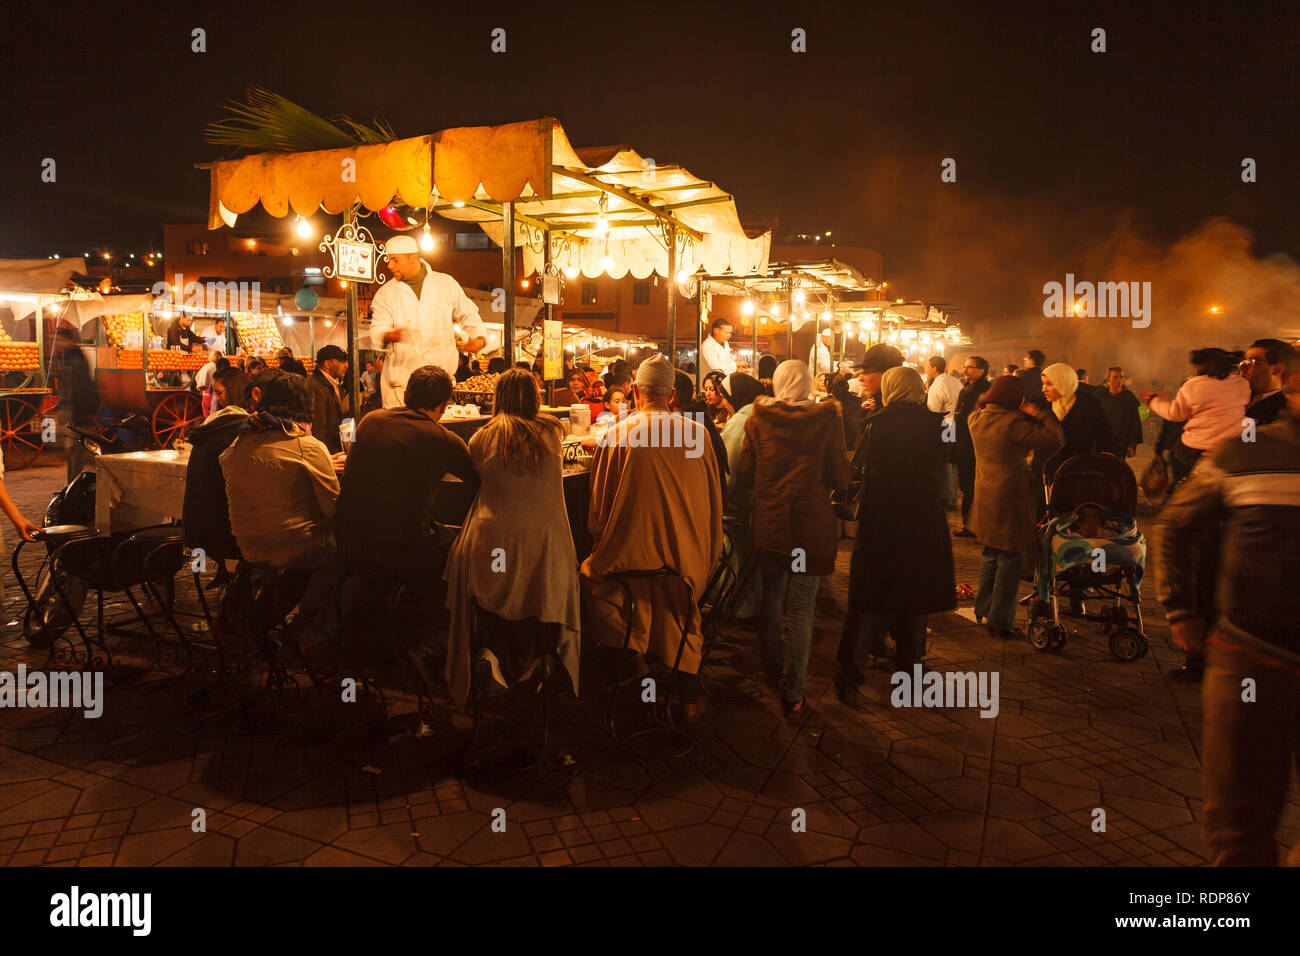 Families and tourists eating at food market stalls in Marrakesh - Stock Image